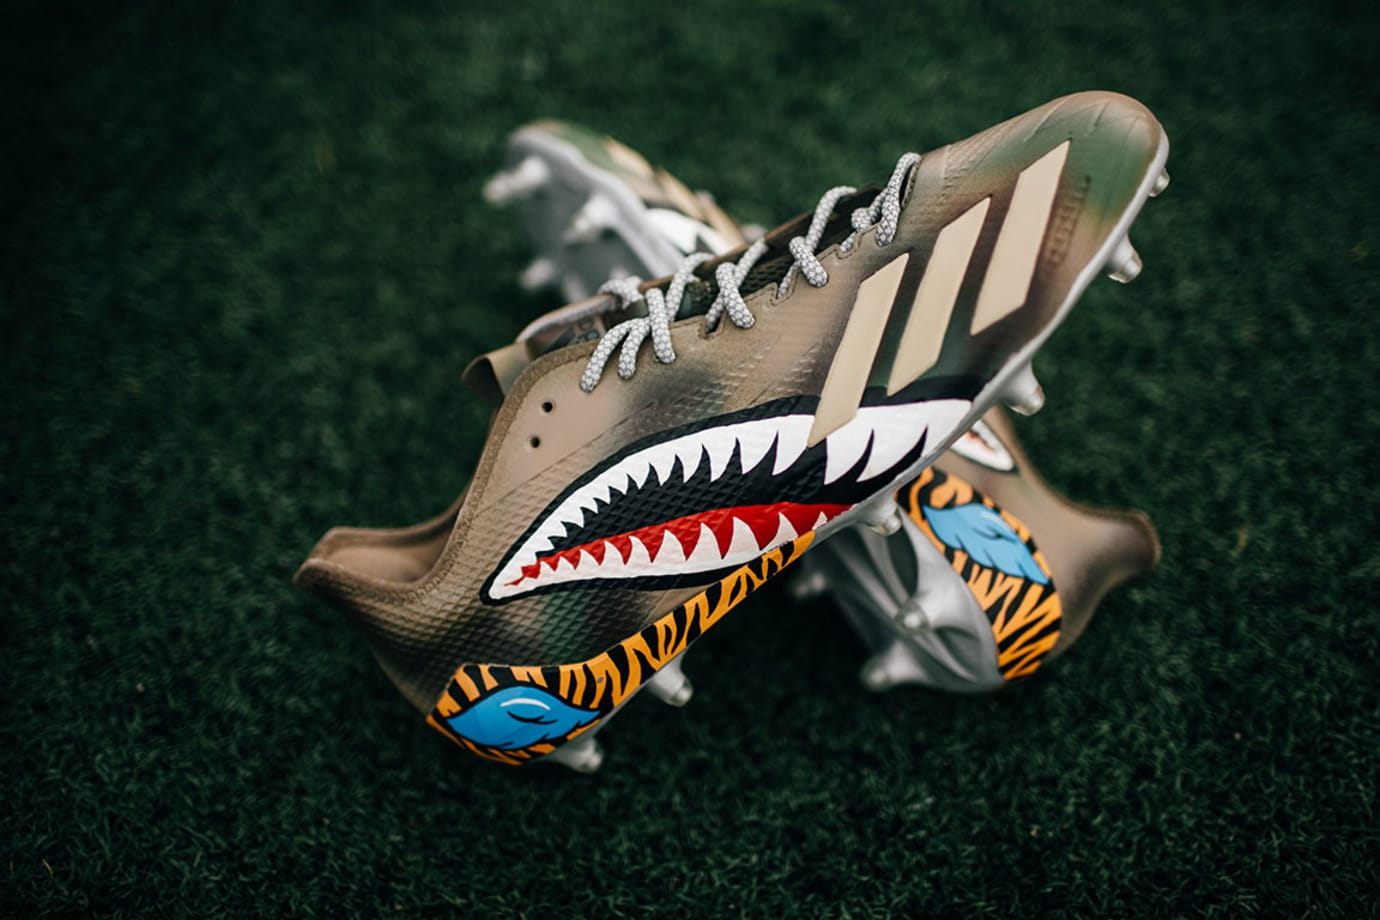 Adidas Call of Duty Cleats Hopkins